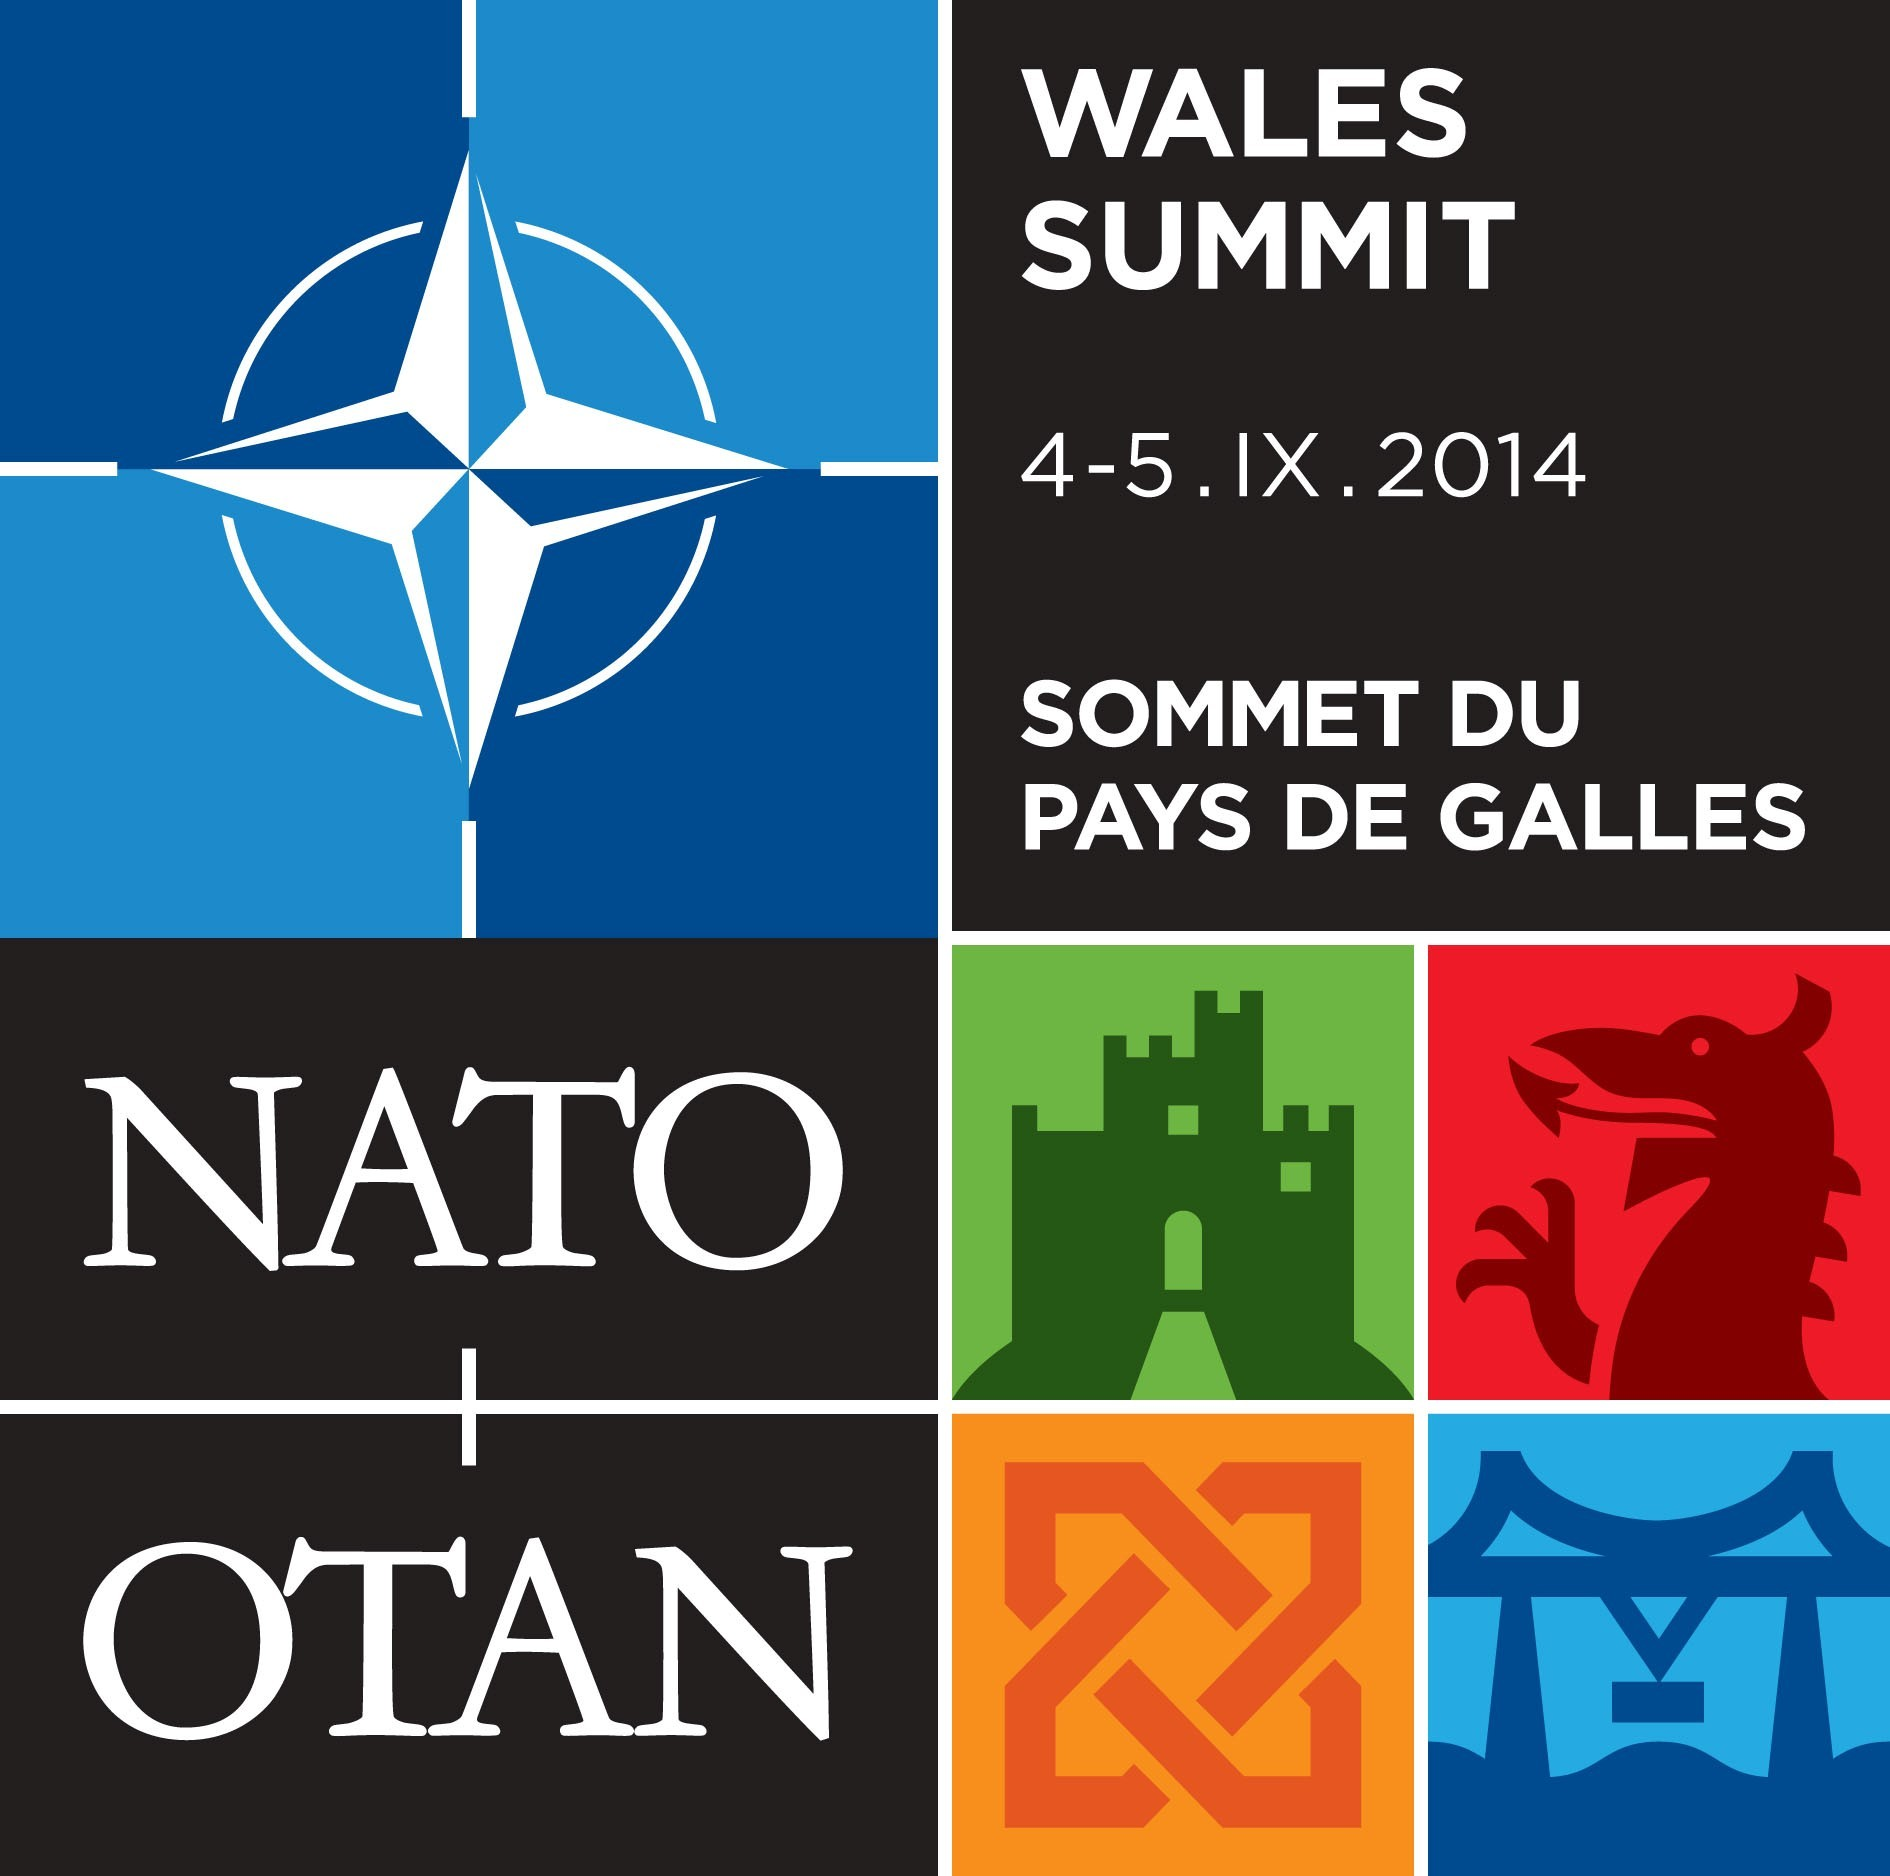 Vale-based AM says local tourism could benefit from NATO summit in Newport